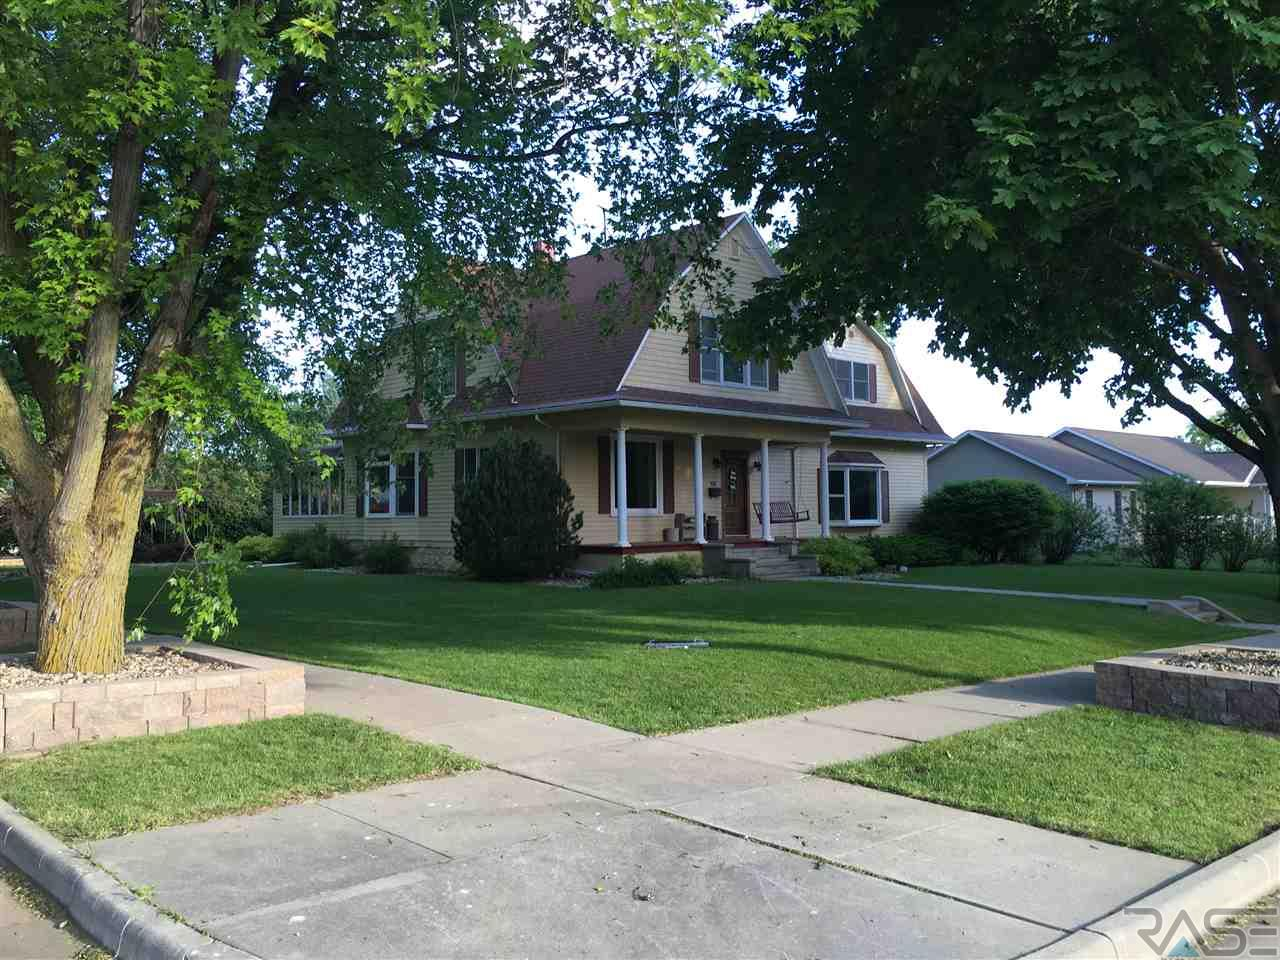 403 N Maple St, Avon, SD 57315